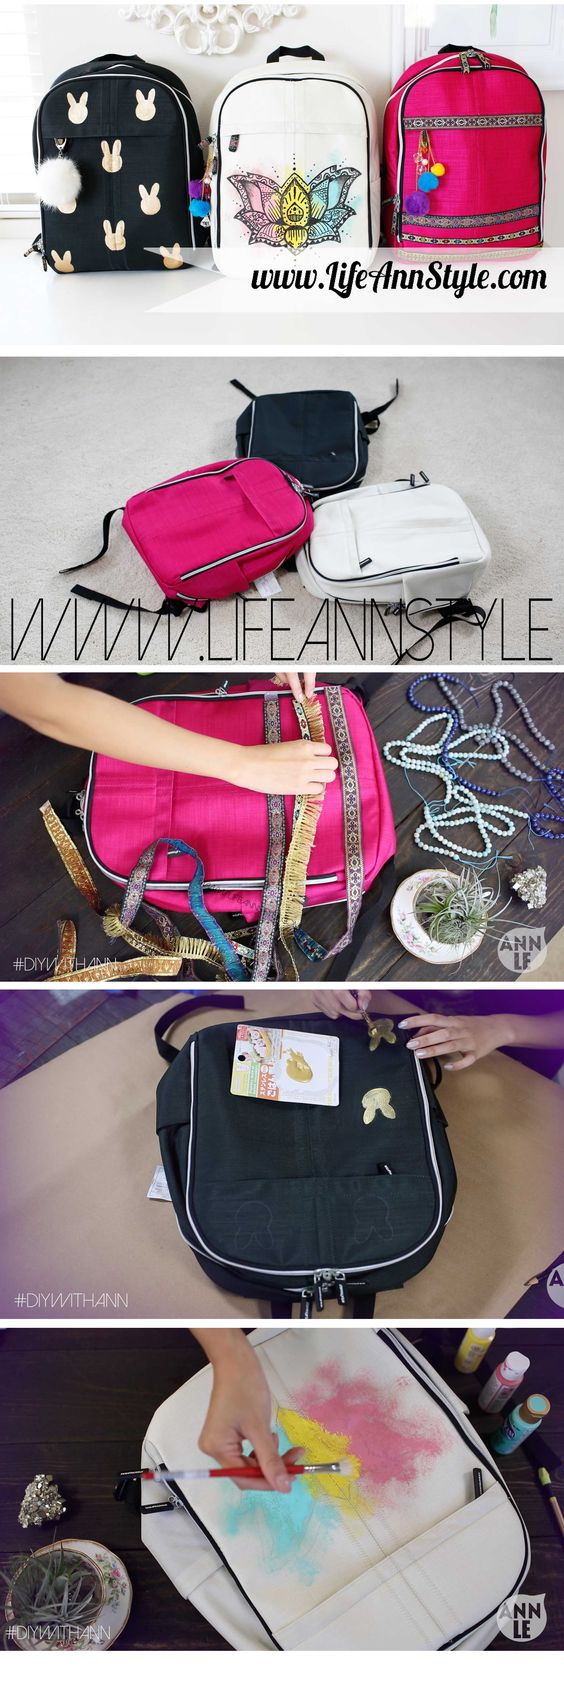 DIY How to Make Backpack designs!! | lifestyle  BACK TO SCHOOL #backtoschool  | LifeAnnStyle.com